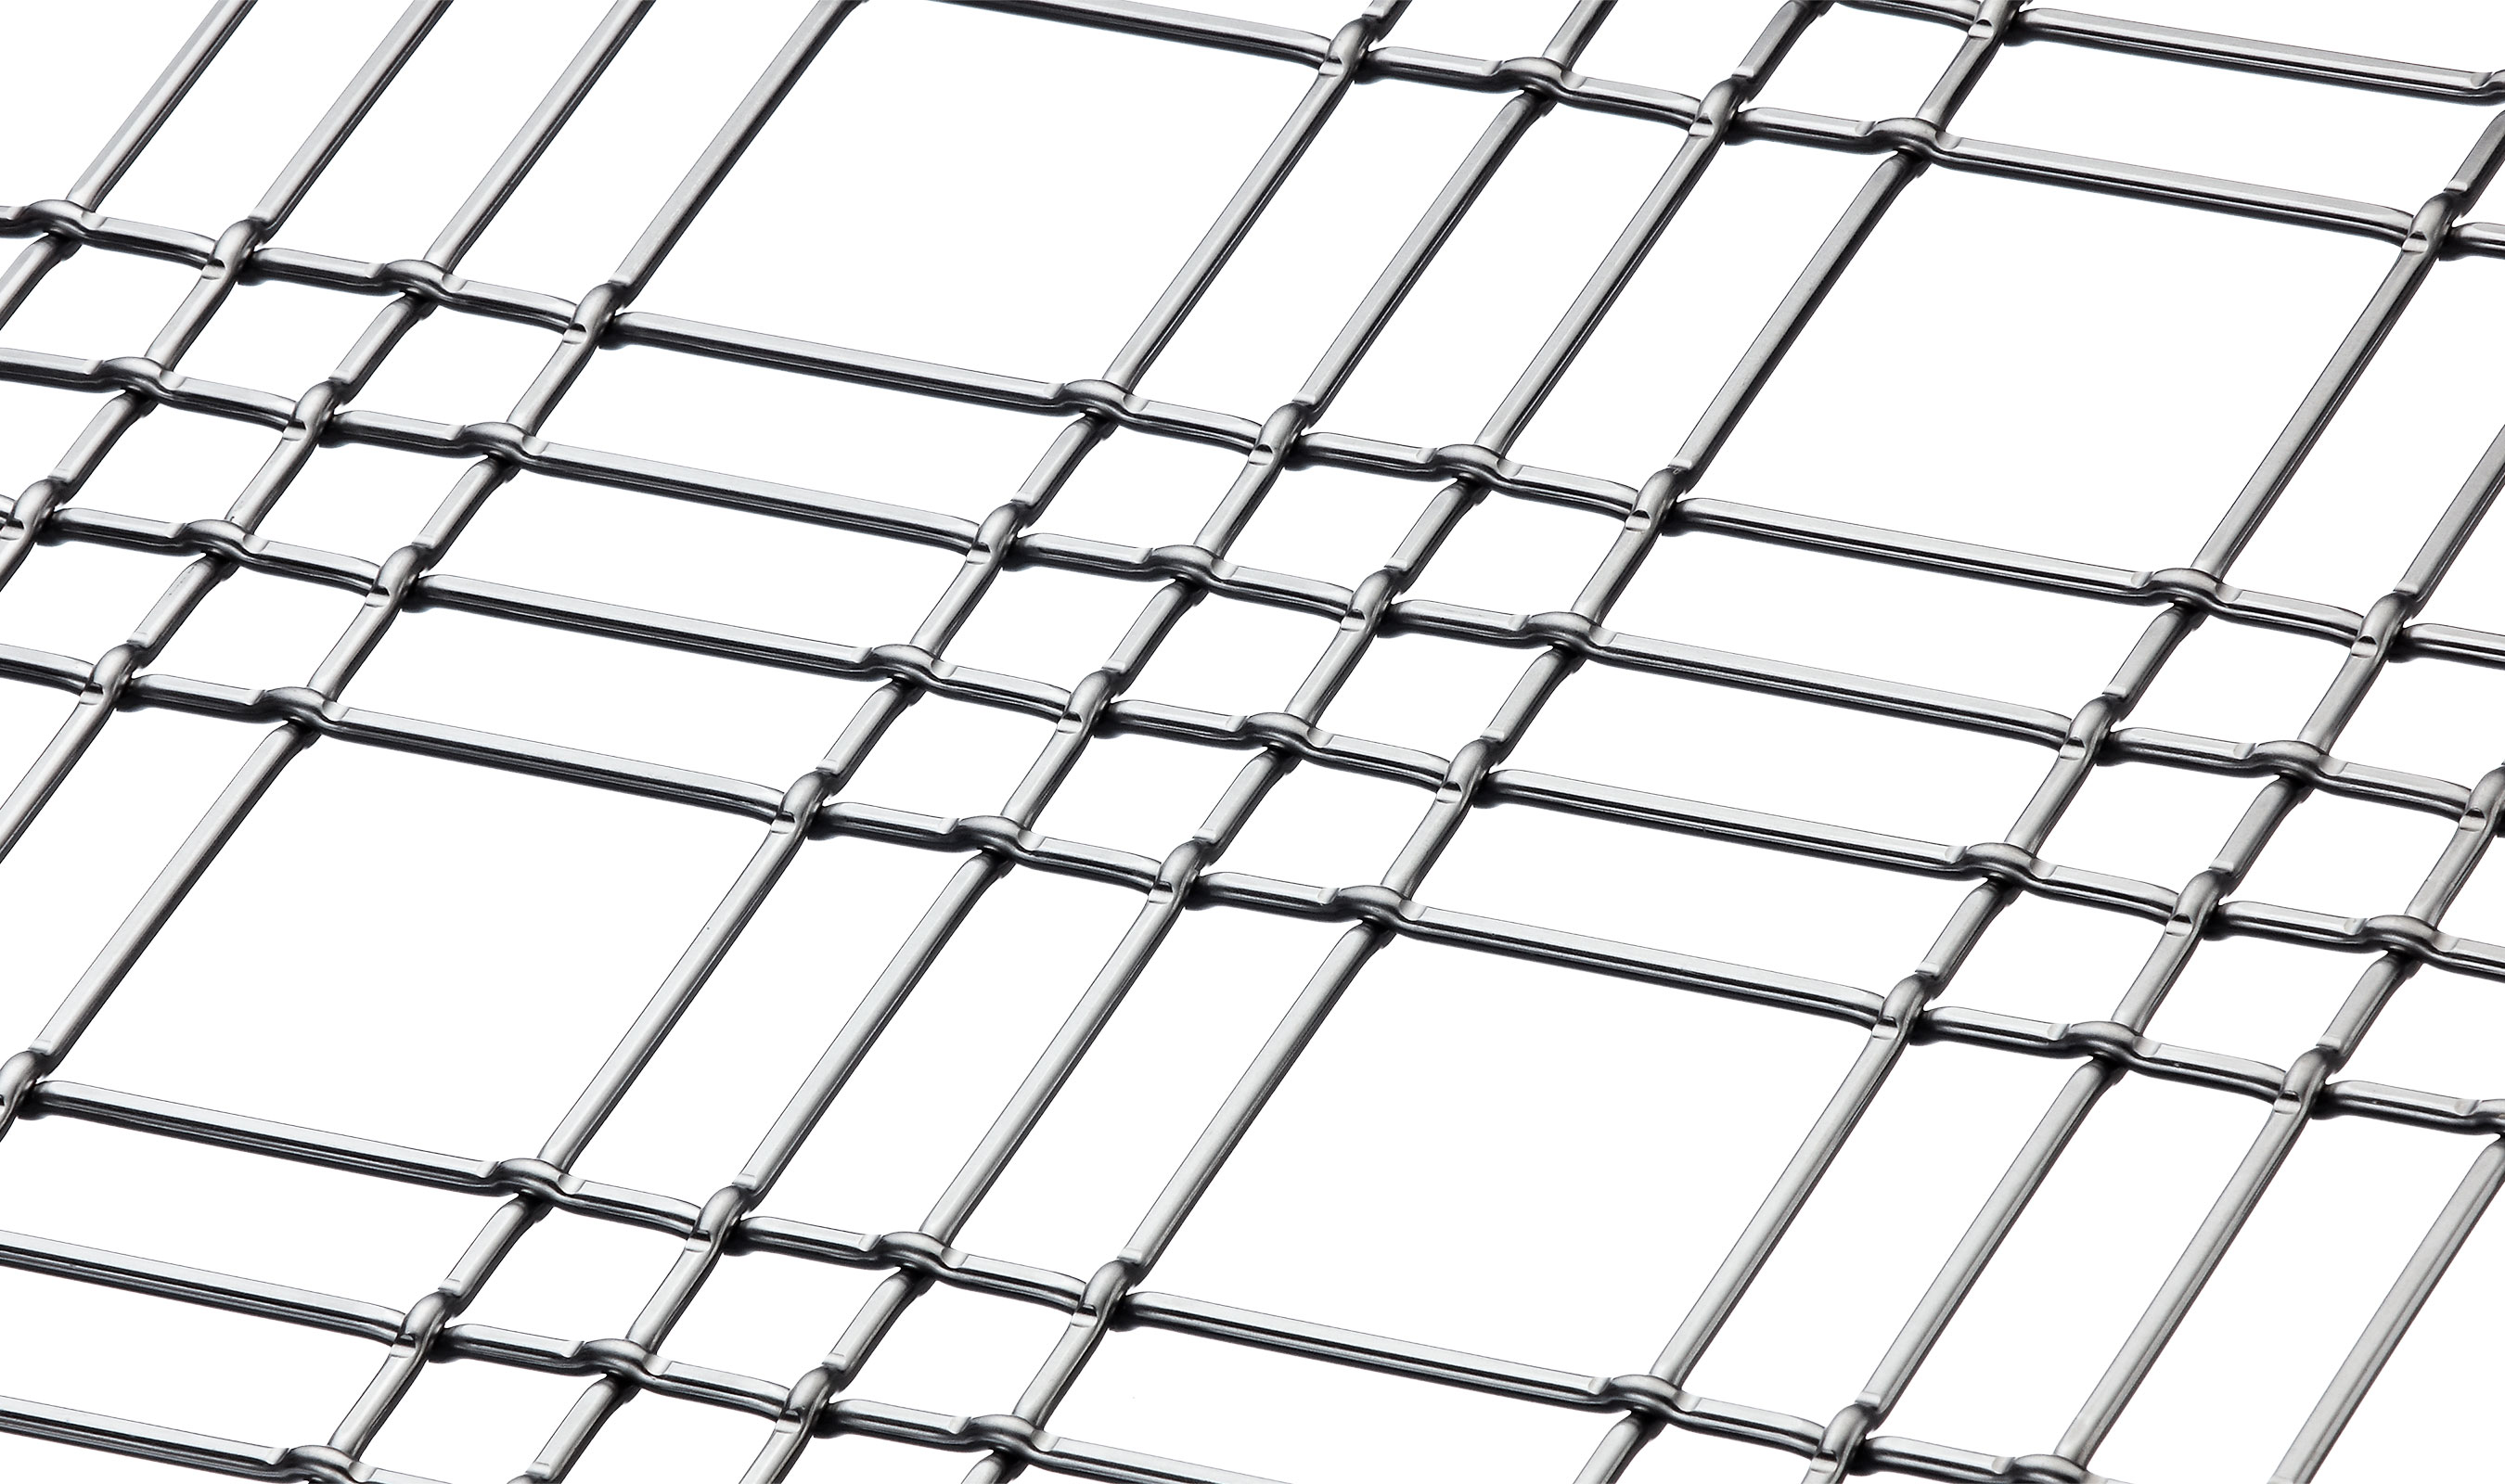 M44-2 decorative large scale wire mesh pattern